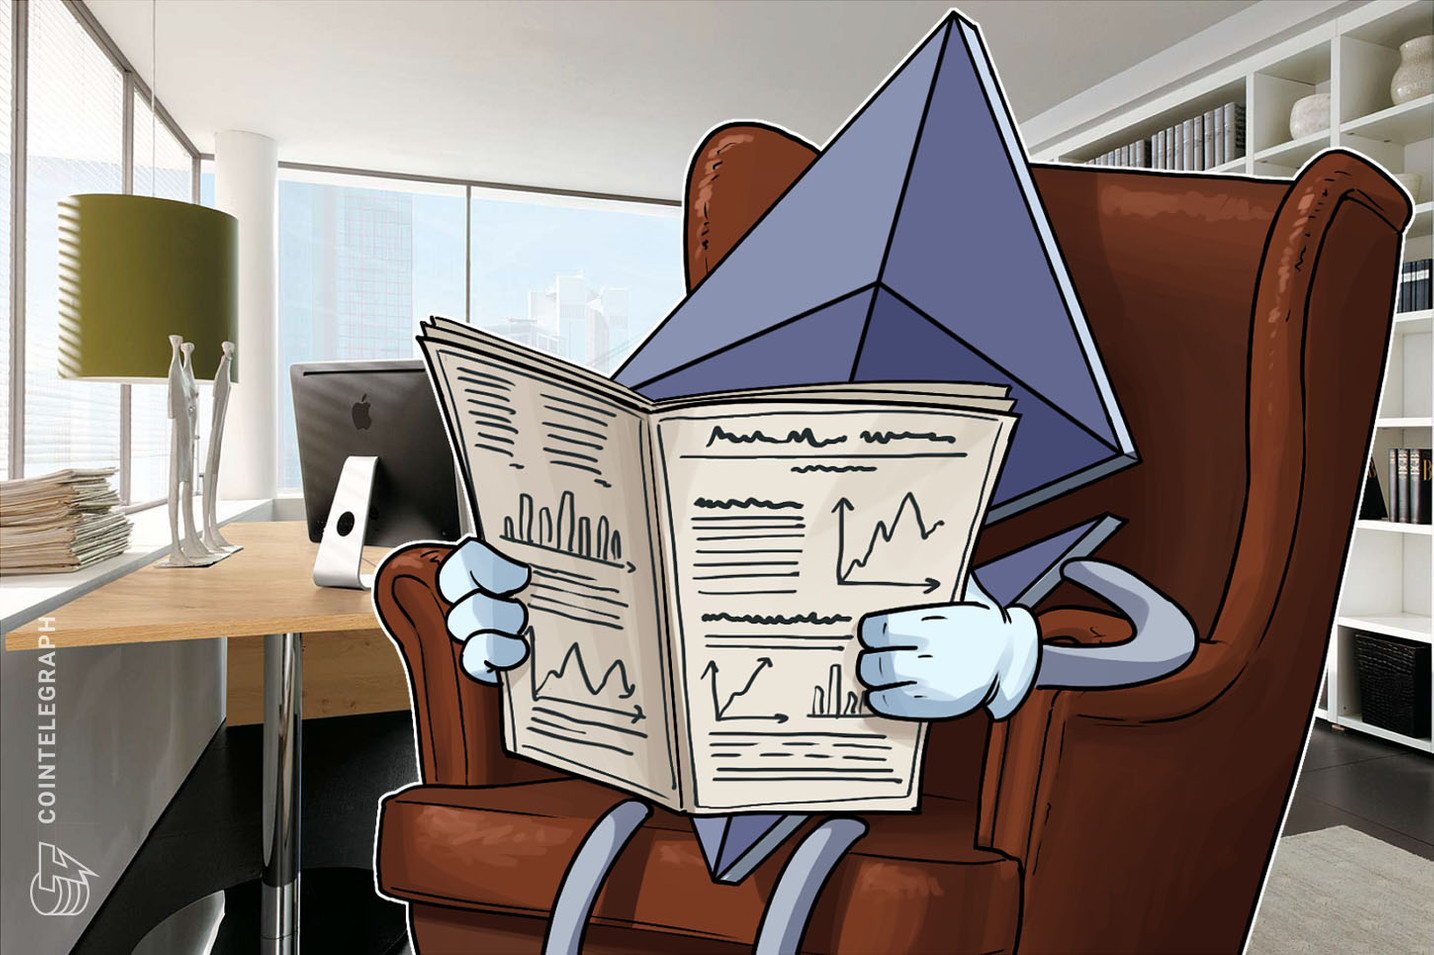 Analysts predict Yearn Finance's ETH vault could spark renewed Ether bull run